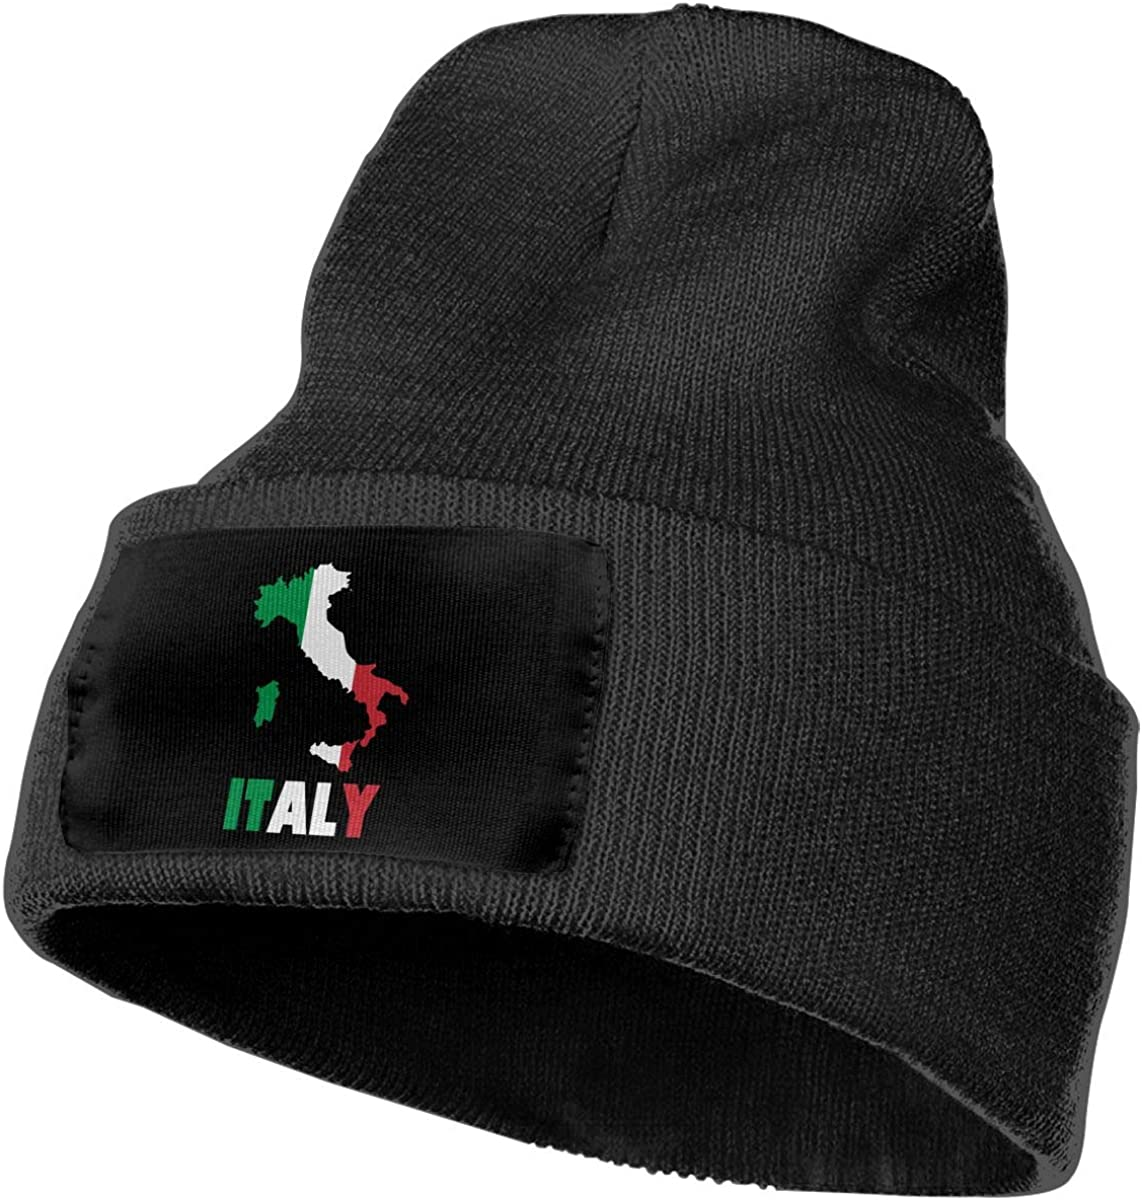 COLLJL-8 Men /& Women Flag Map of Italy Outdoor Fashion Knit Beanies Hat Soft Winter Knit Caps